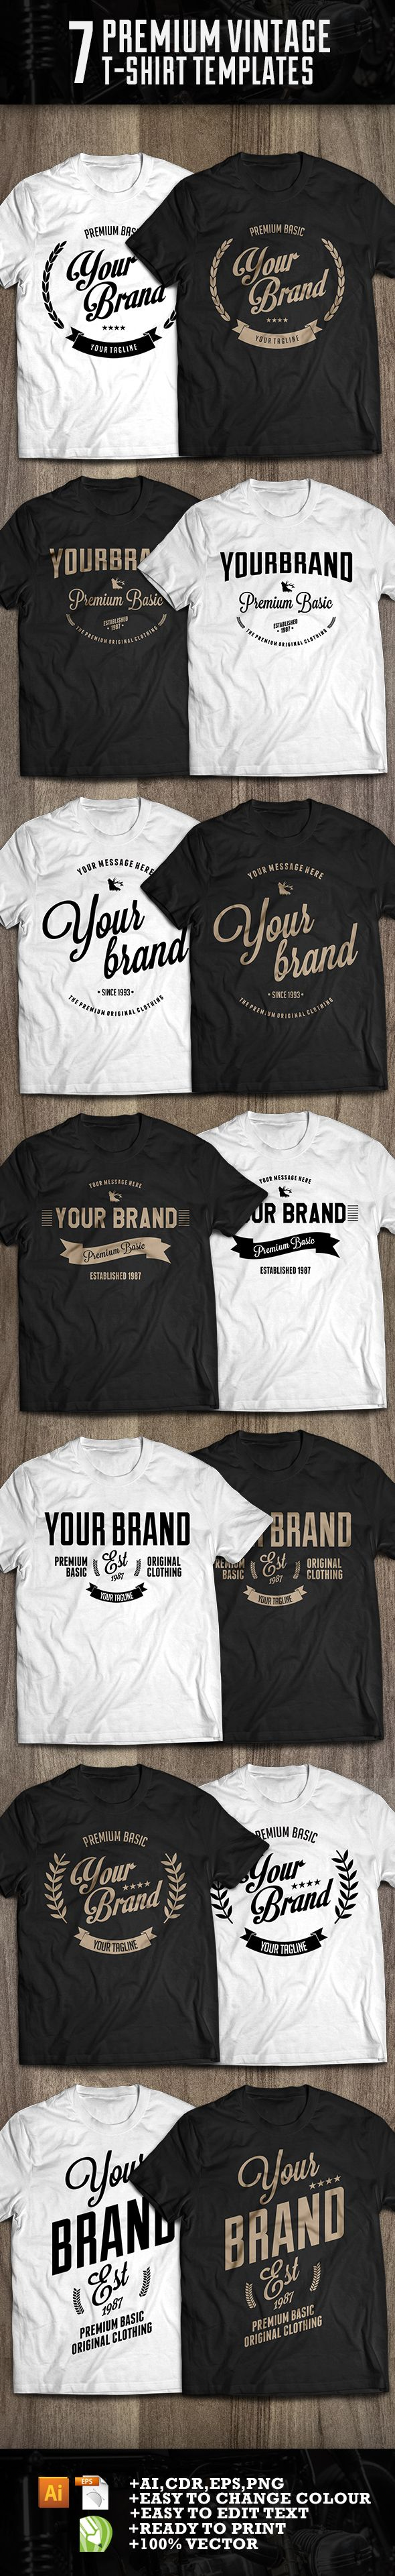 7 premium t-shirt template by Lazy Bones, via Behance